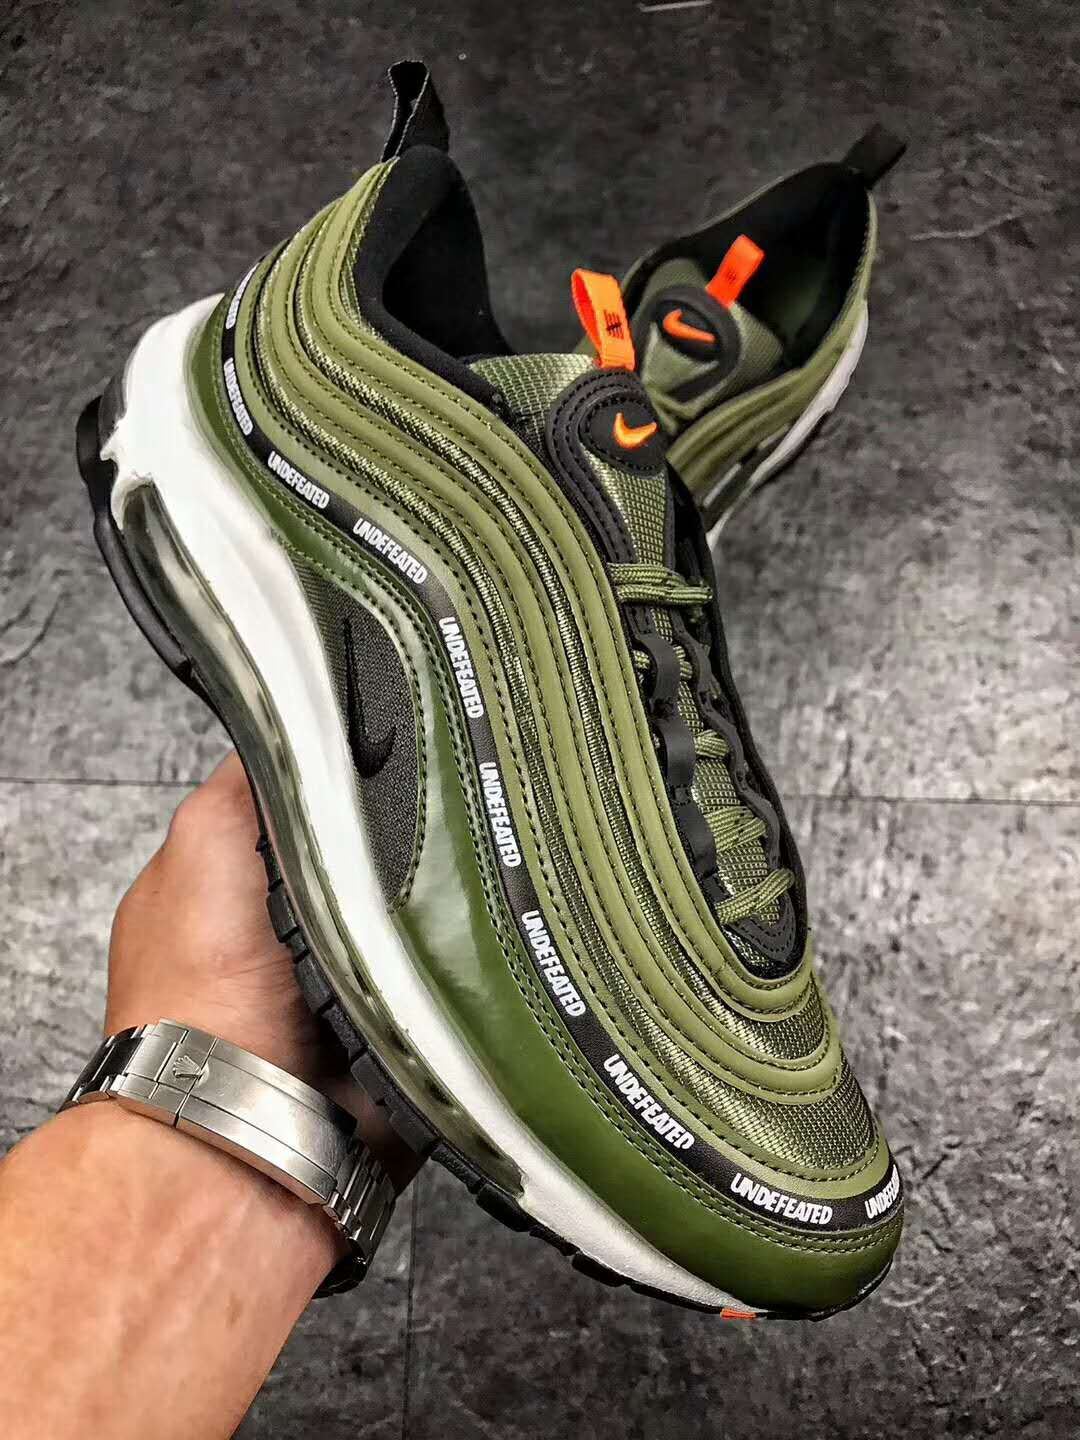 Undefeated X Nike Air Max 97 Olive Green Bullet AJ1986 300